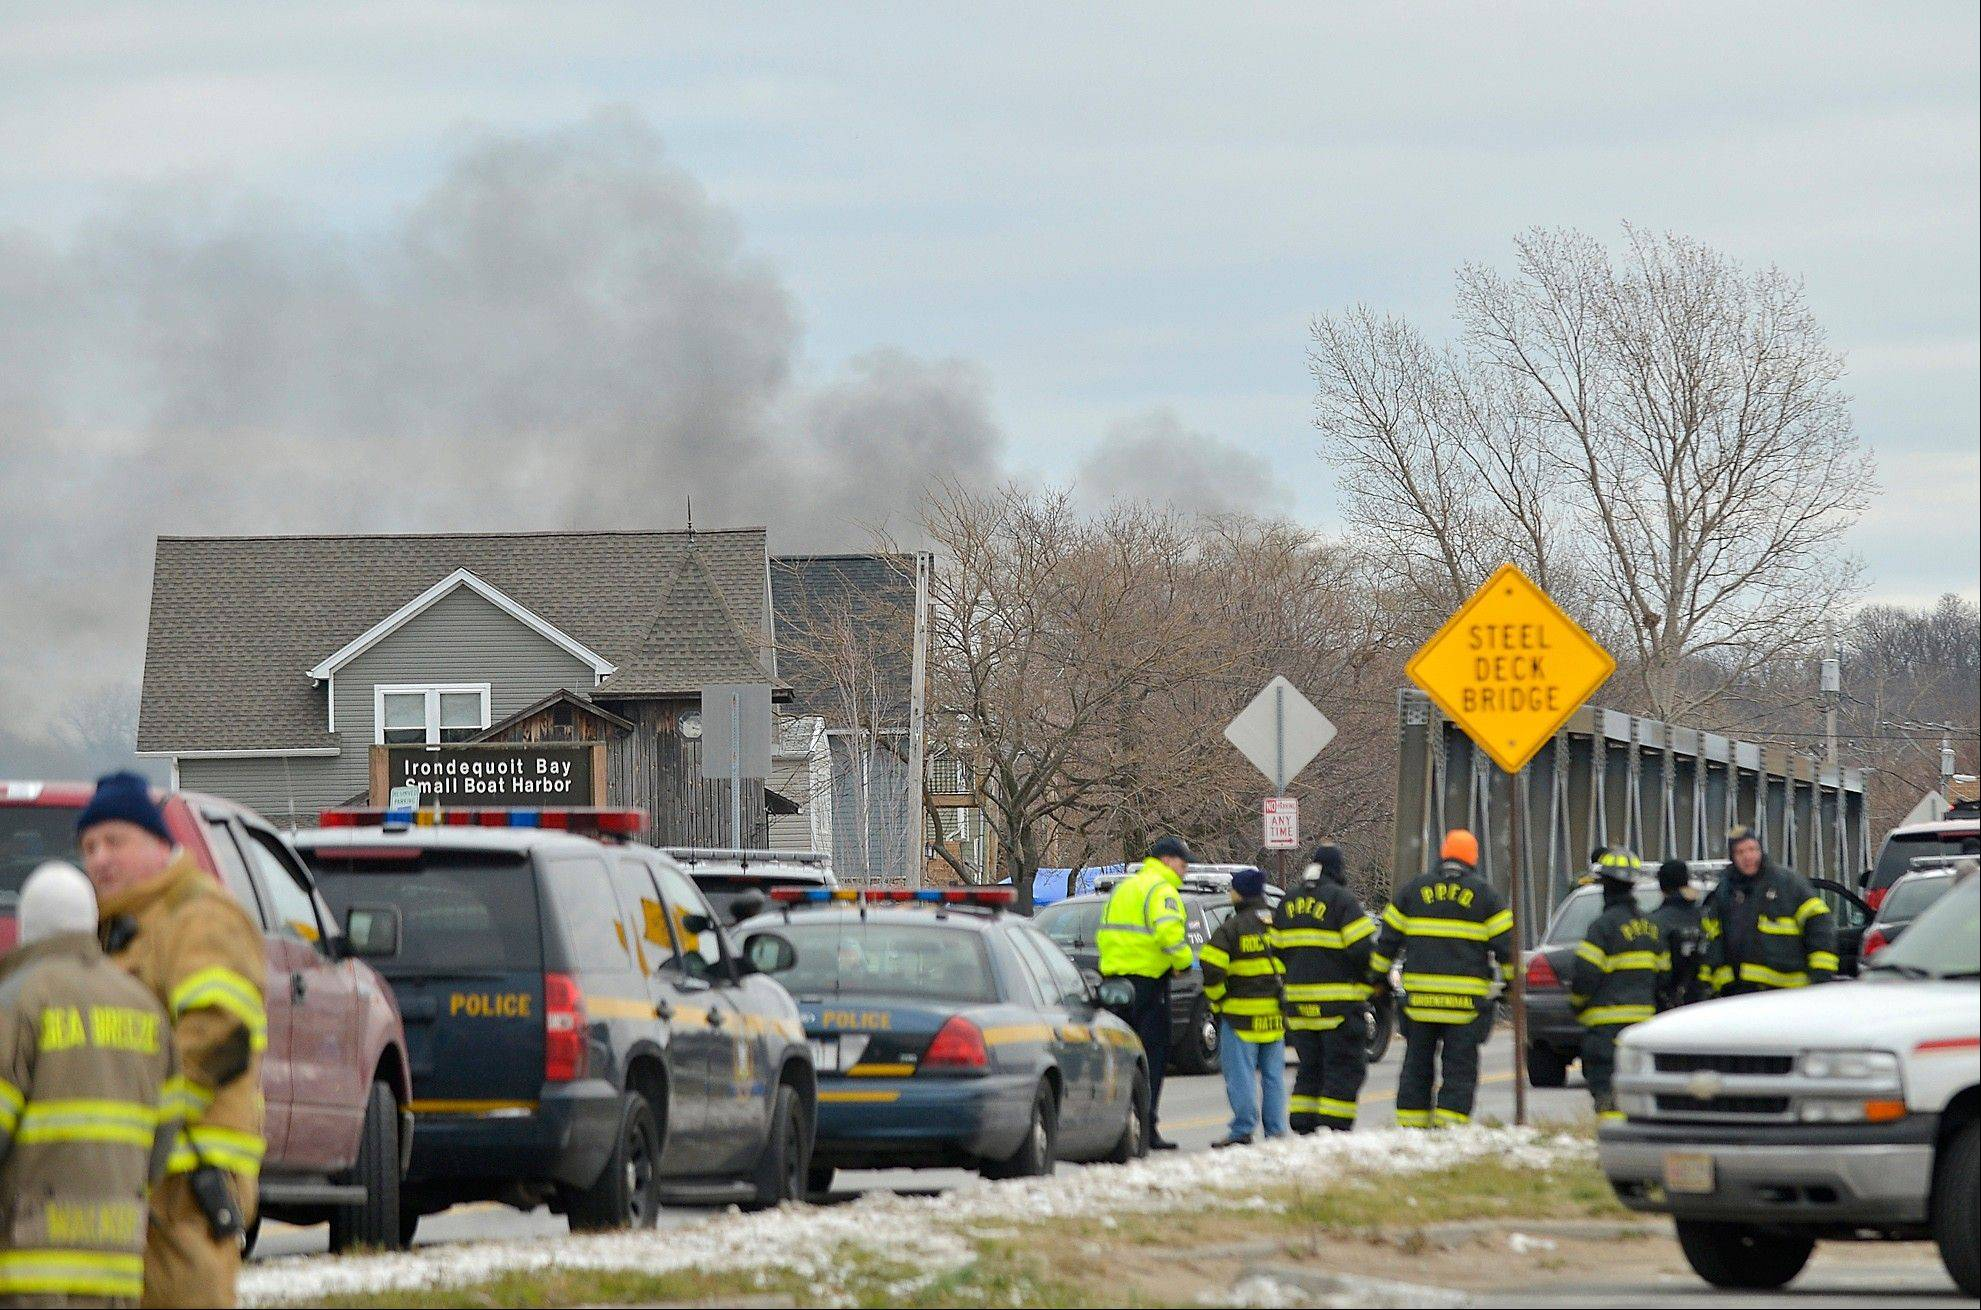 Smoke is seen from the site of a fire in Webster, N.Y., Monday, Dec. 24, 2012. Police in New York state say a man who killed two firefighters in a Christmas Eve ambush had served 17 years for manslaughter in the death of his grandmother.